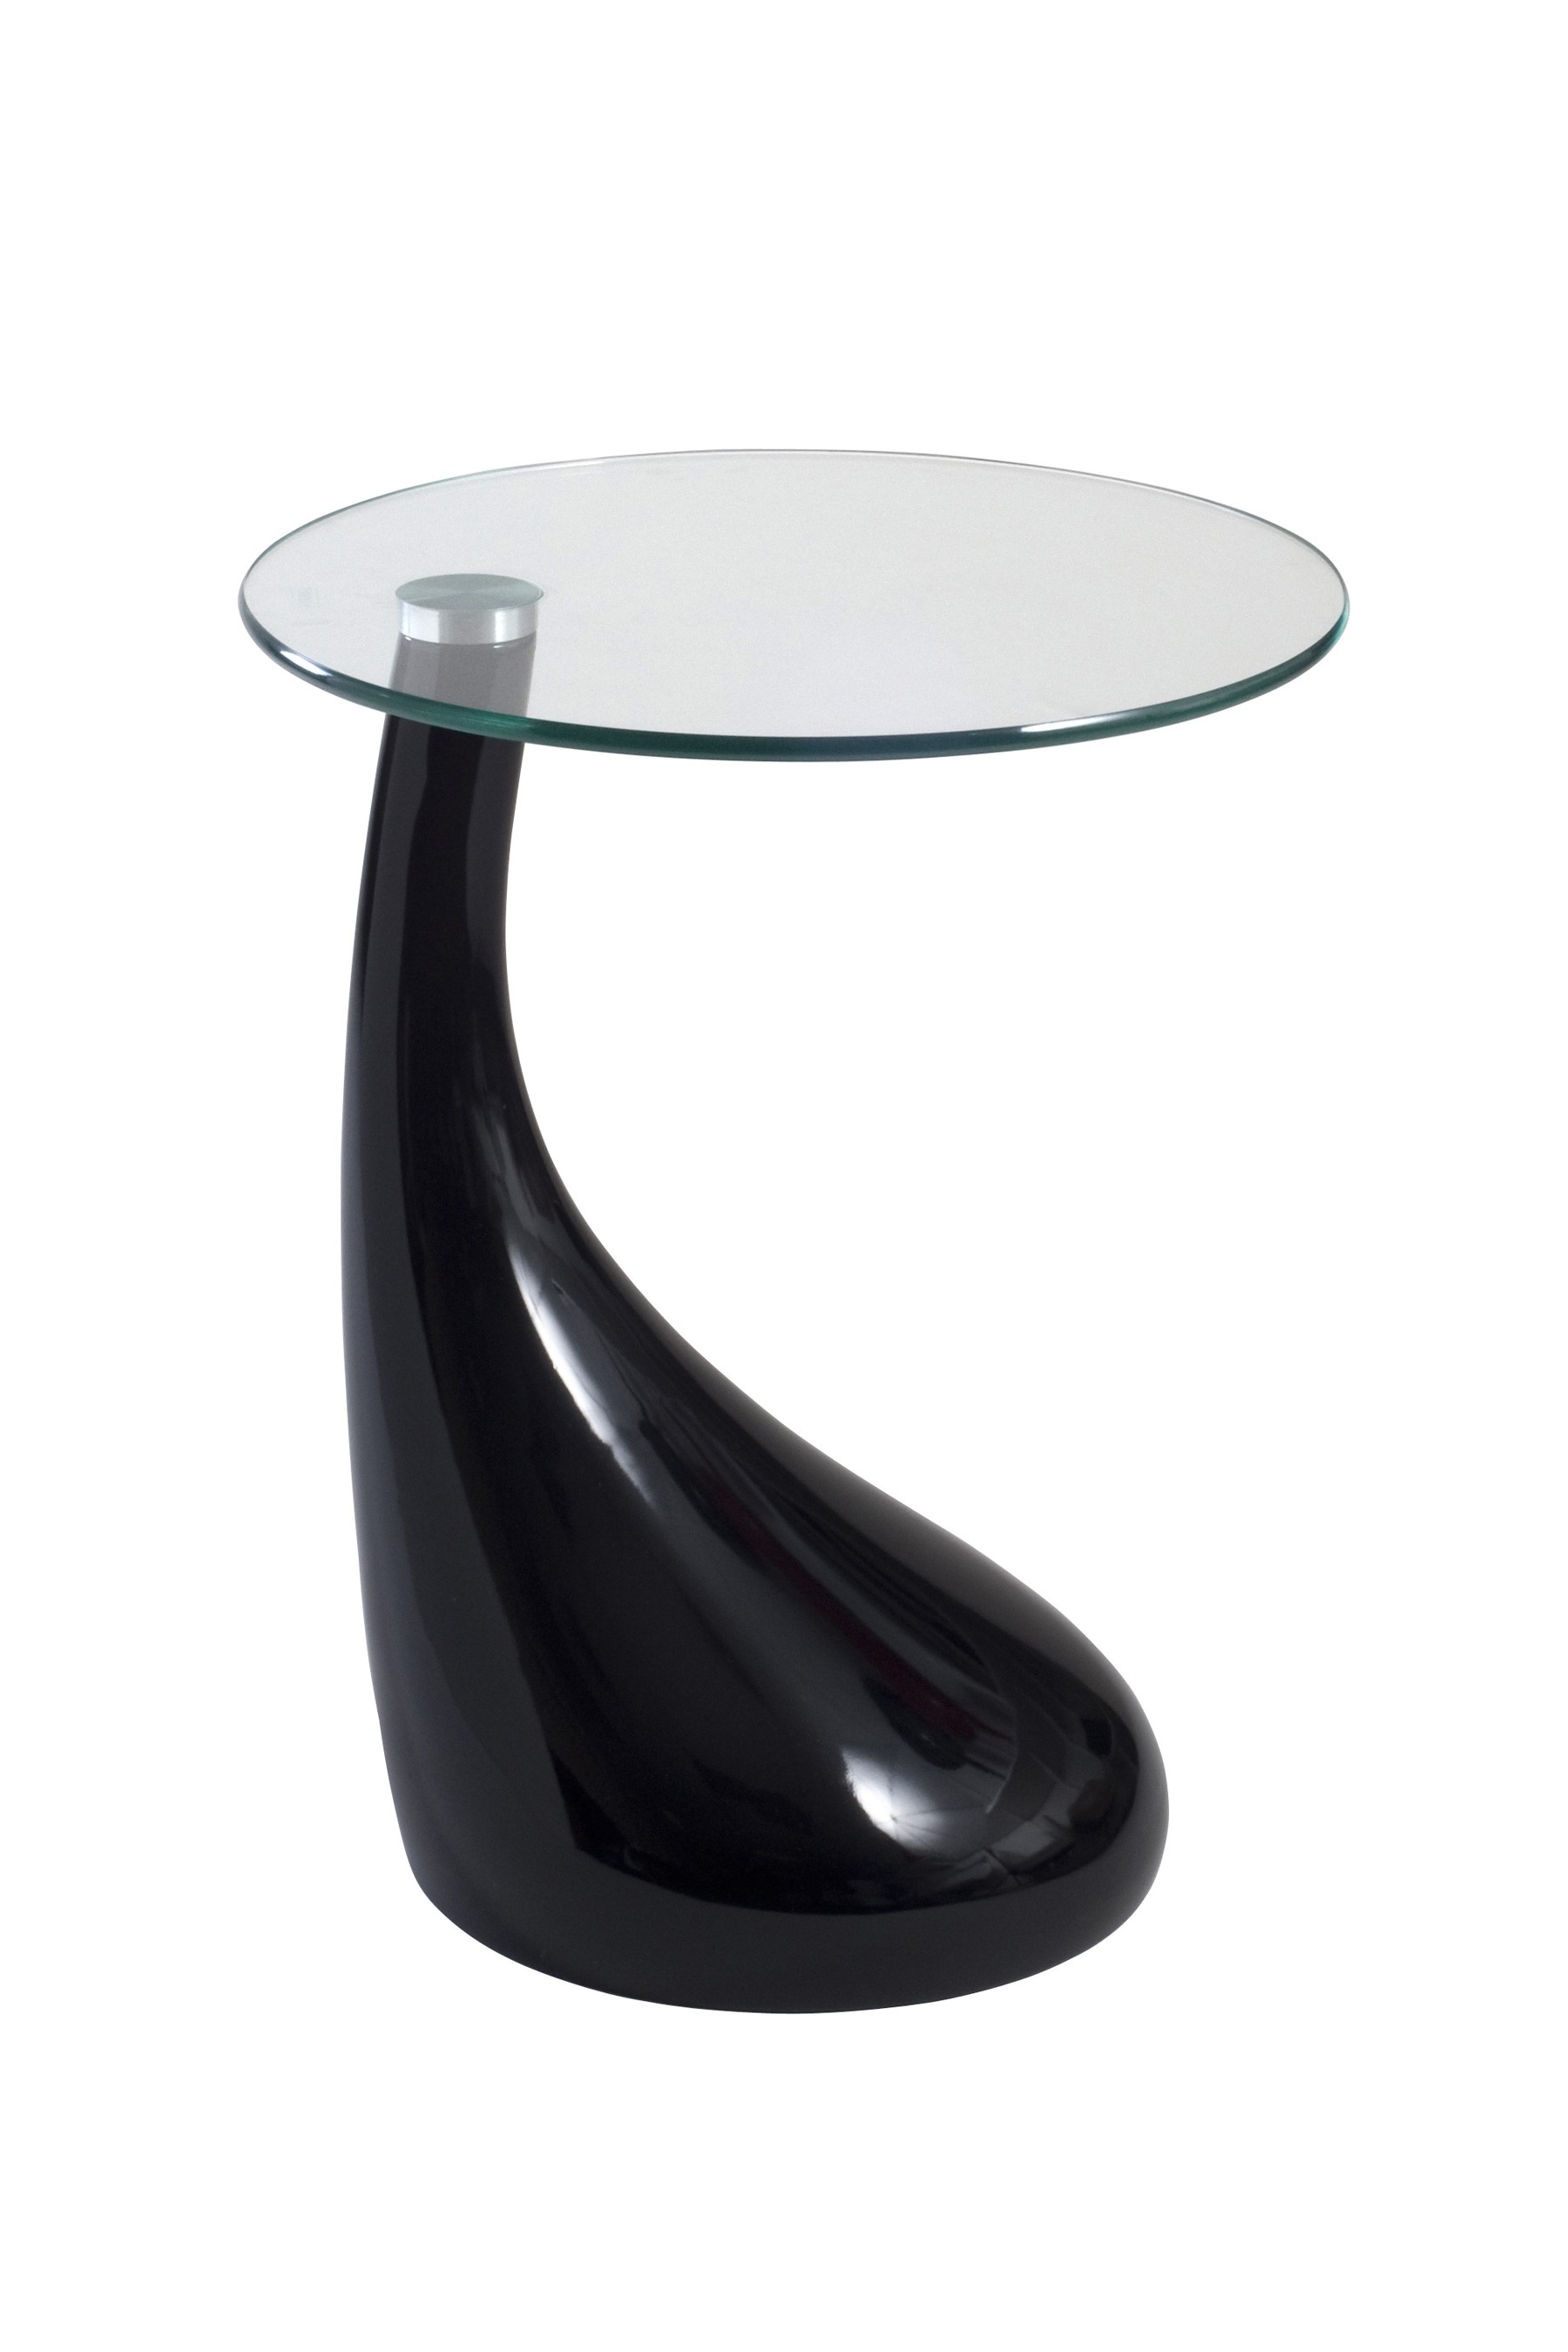 best small black accent table with round glass side curving acrylic pedestal base white tables living room target furniture natural lamp top brass coffee wrought iron garden pier